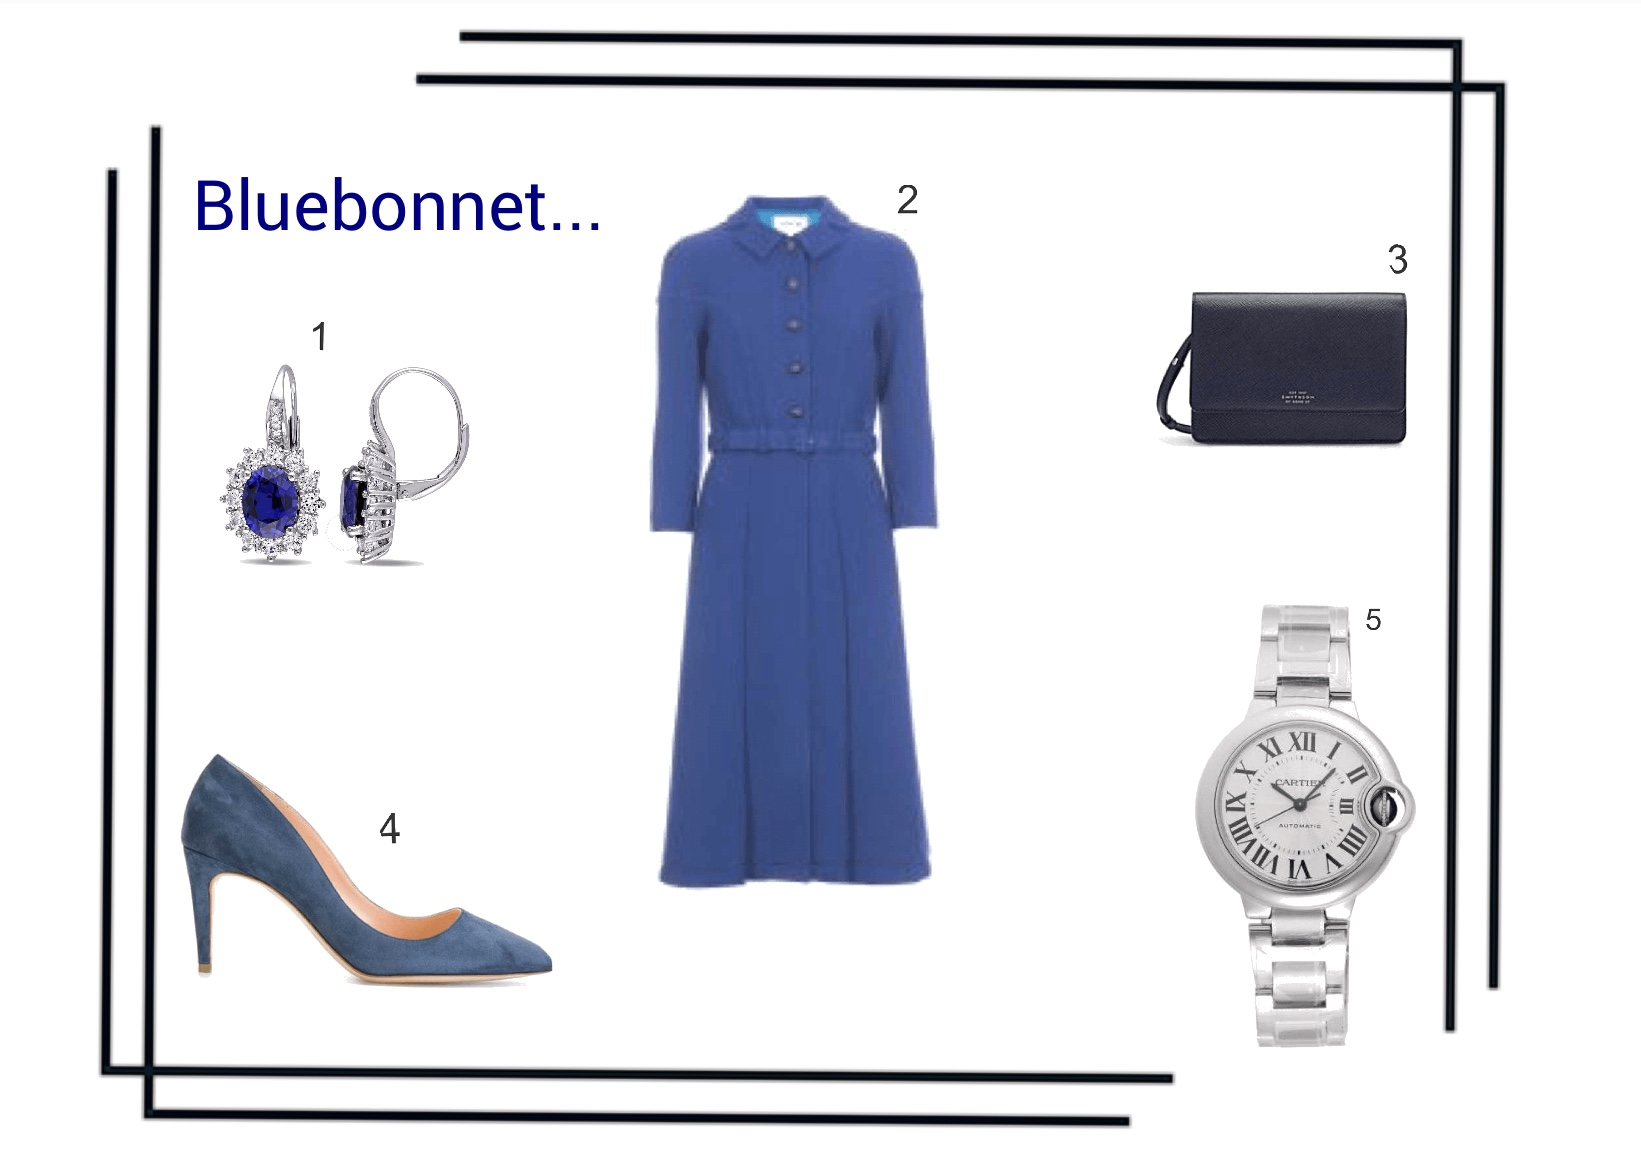 Instagram: @pslilyboutique, Pinterest, Los Angeles fashion blogger, top fashion blog, best fashion blog, fashion & personal style blog, travel blog, travel blogger, LA fashion blogger, Bluebonnet, RUPERT SANDERSON Nada pumps in bluebonnet, SMYTHSON Panama cross-grained leather wallet with strap in navy, Cartier Balloon Bleu Silver Watch, Sapphire and Diamond Drop Earrings, Eponine London royal blue belted dress coat, Fall & Winter 2018 Outfit Ideas, Shopping, Inspiration, 11.14.18